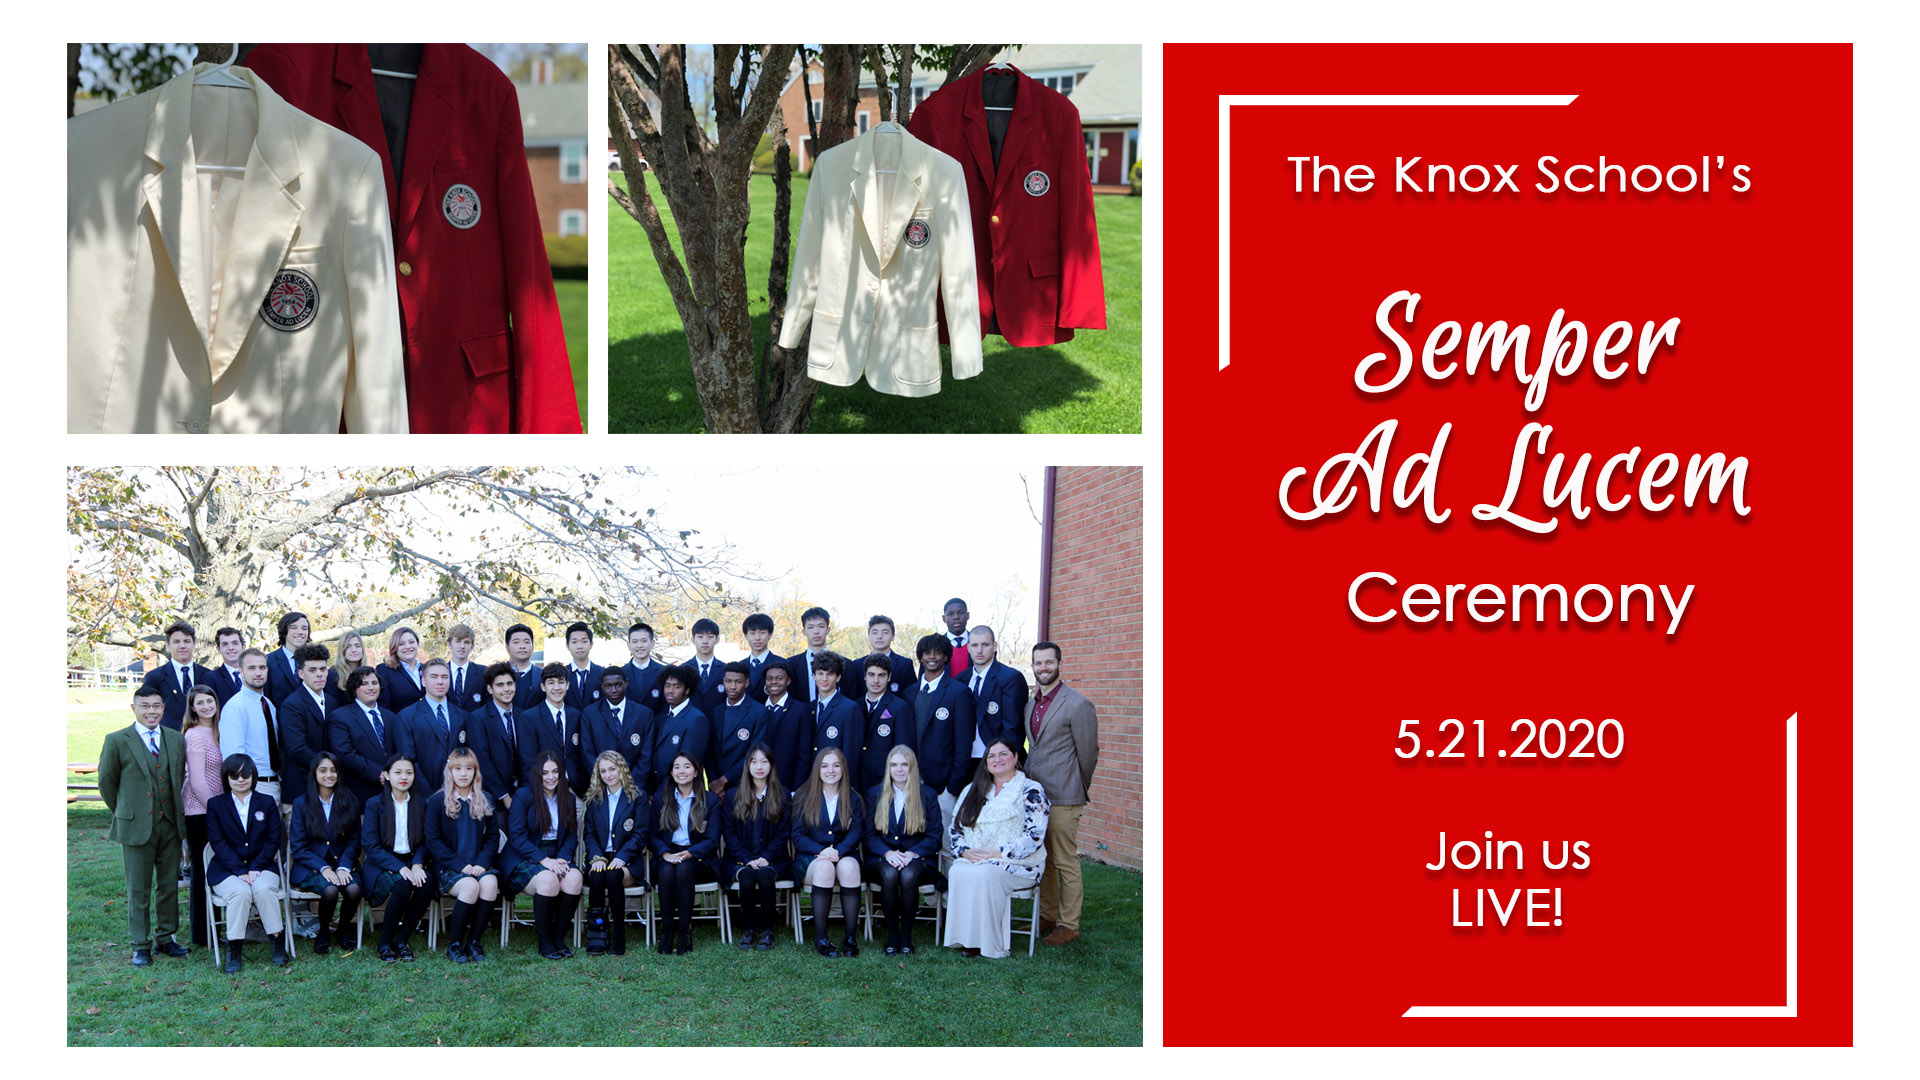 Image collage with Semper Ad Lucem Ceremony listed